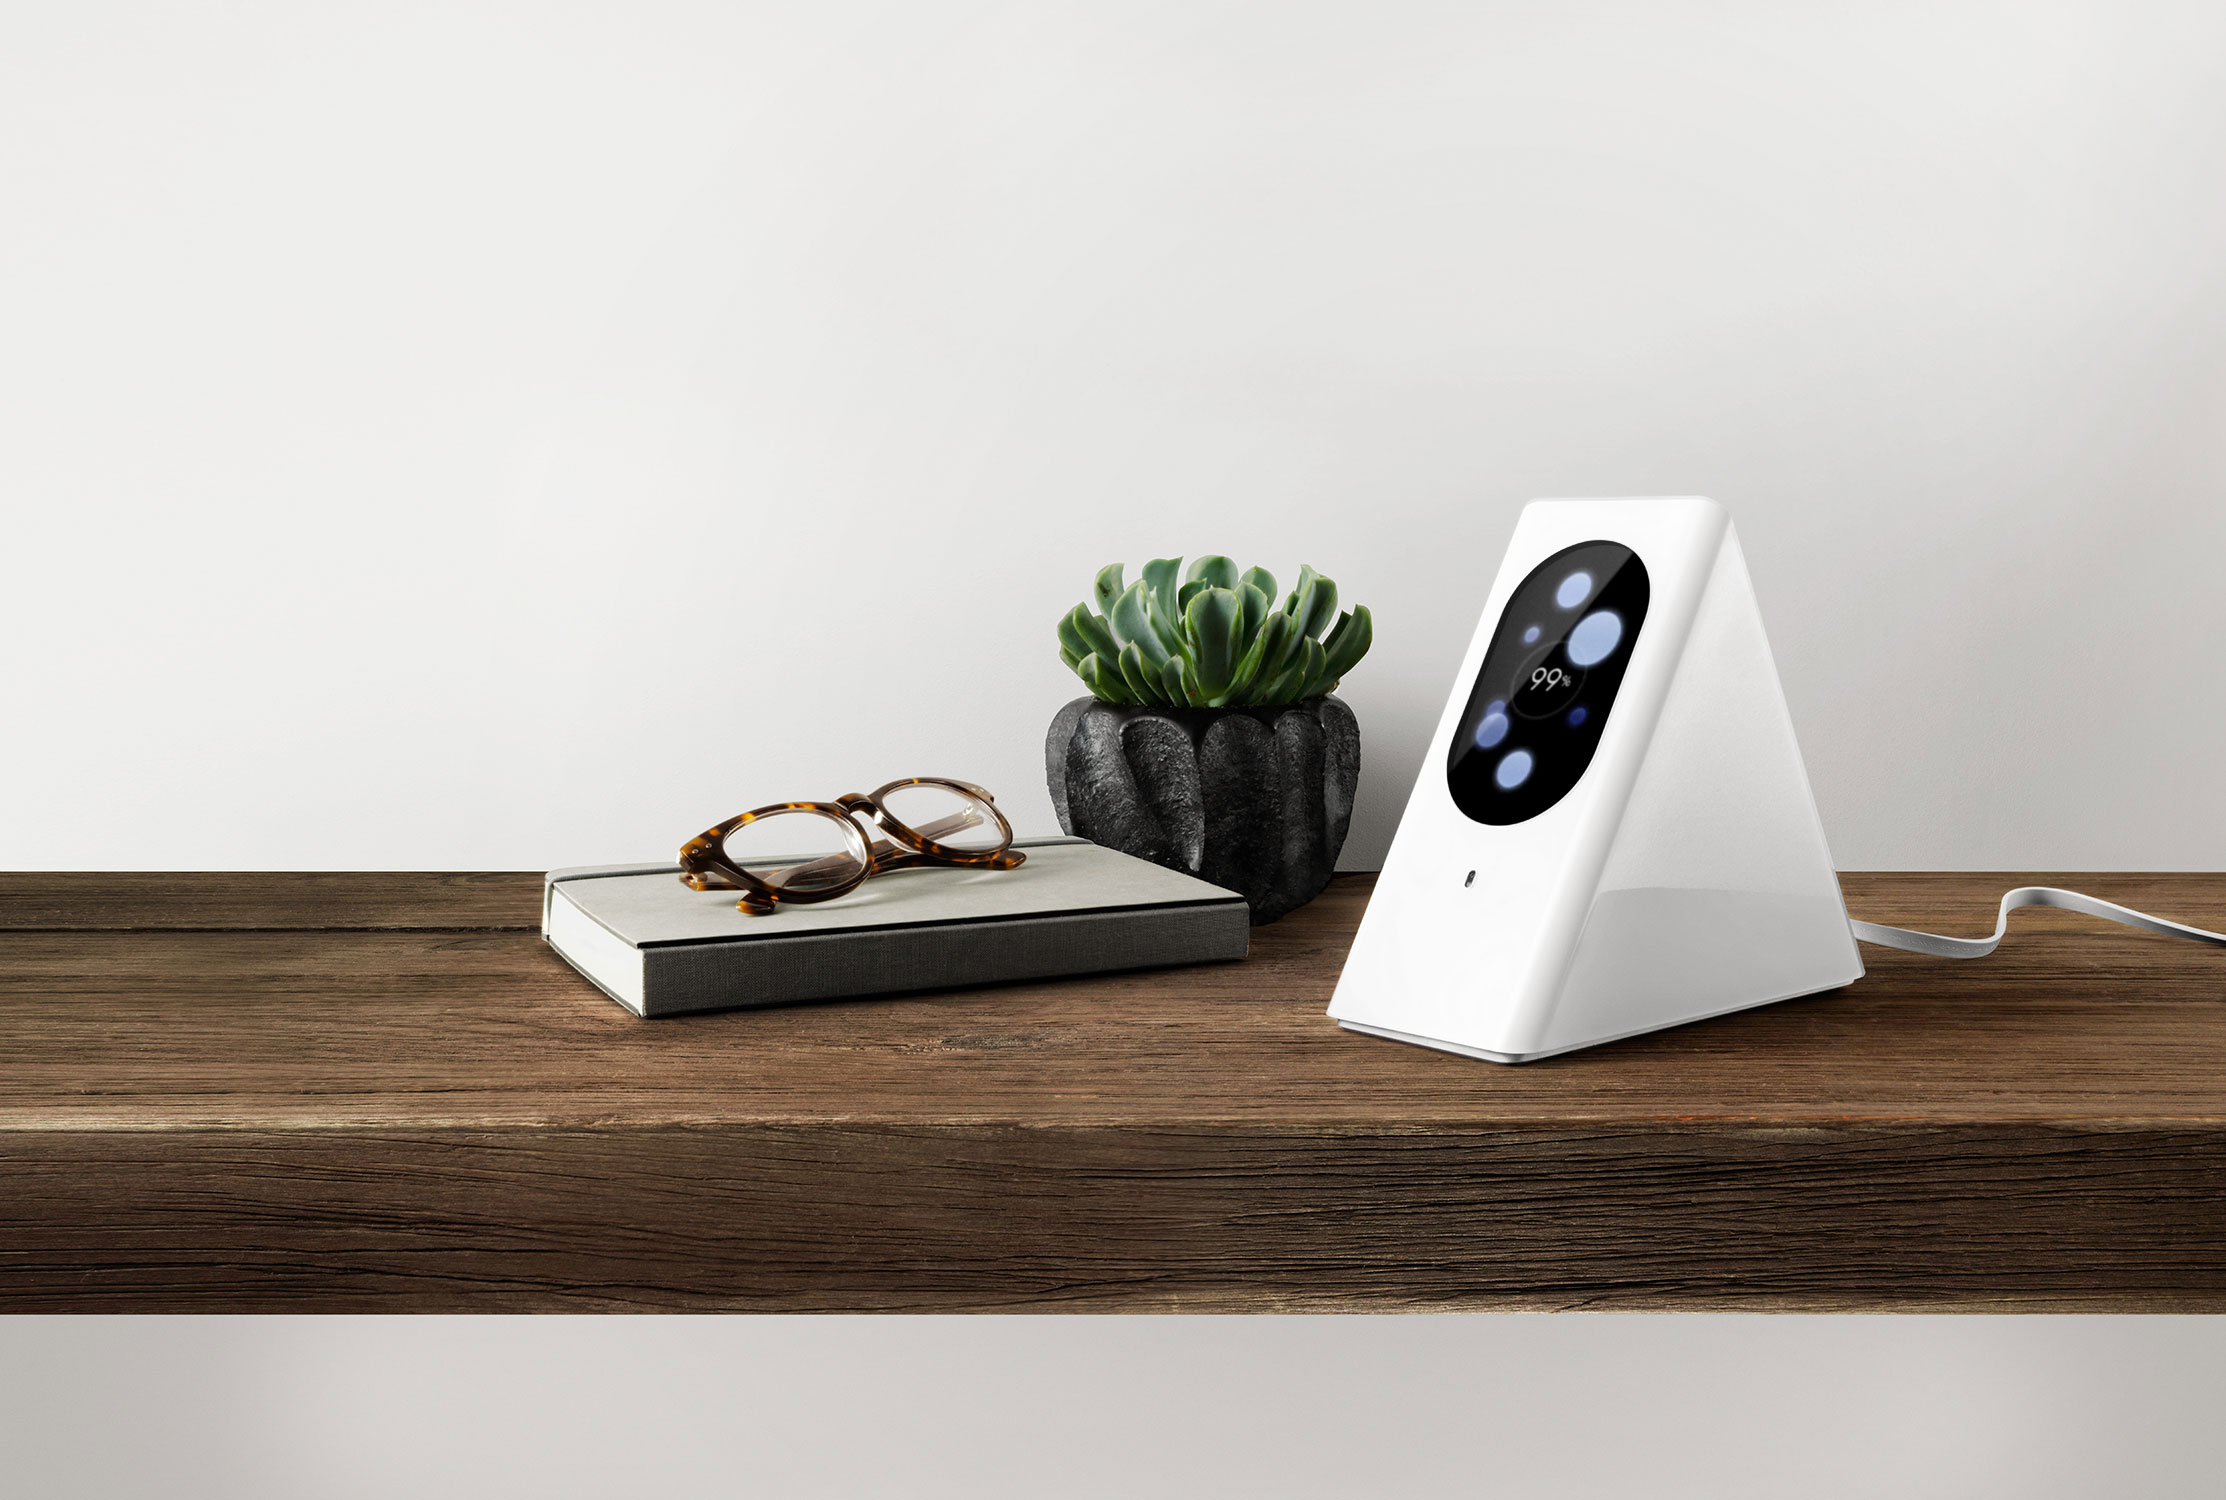 Starry router